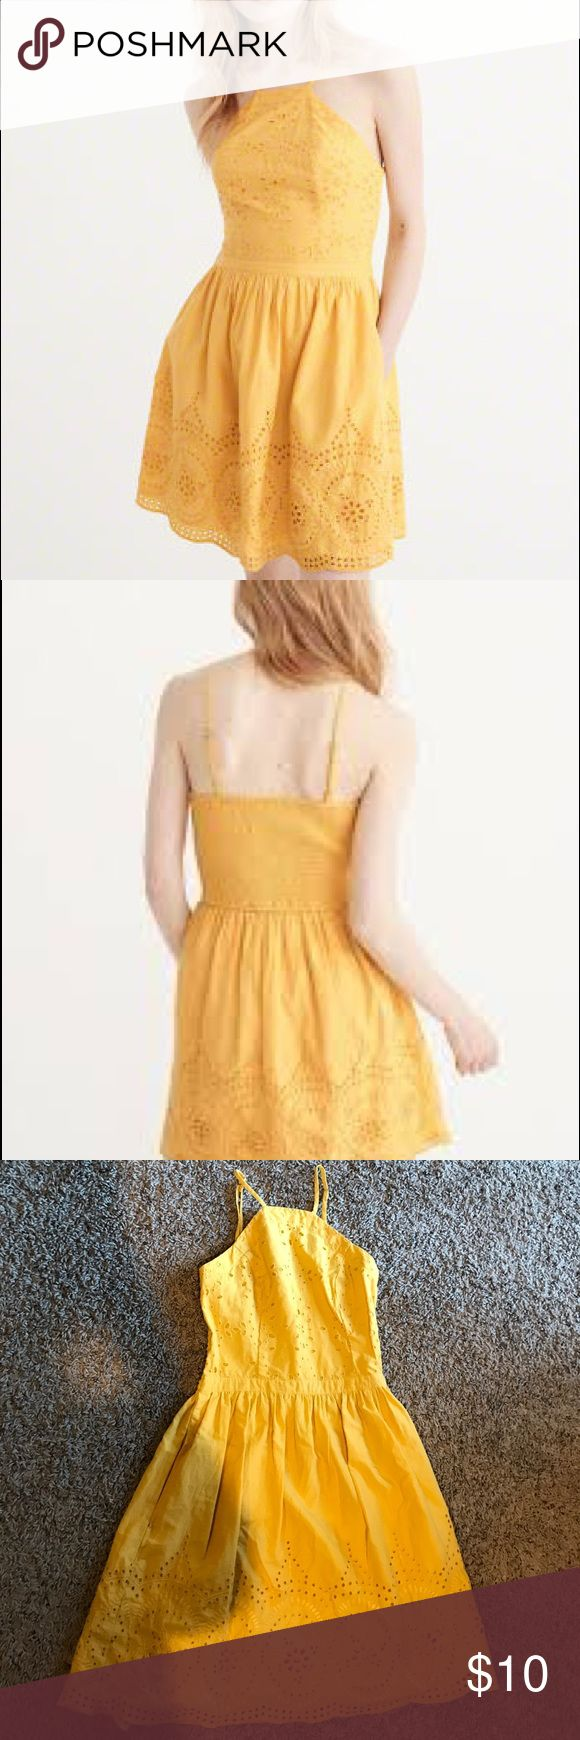 Abercrombie and Fitch eyelet skater dress Yellow eyelet dress. Adjustable straps. Has pockets. Worn once. Size XS Abercrombie & Fitch Dresses